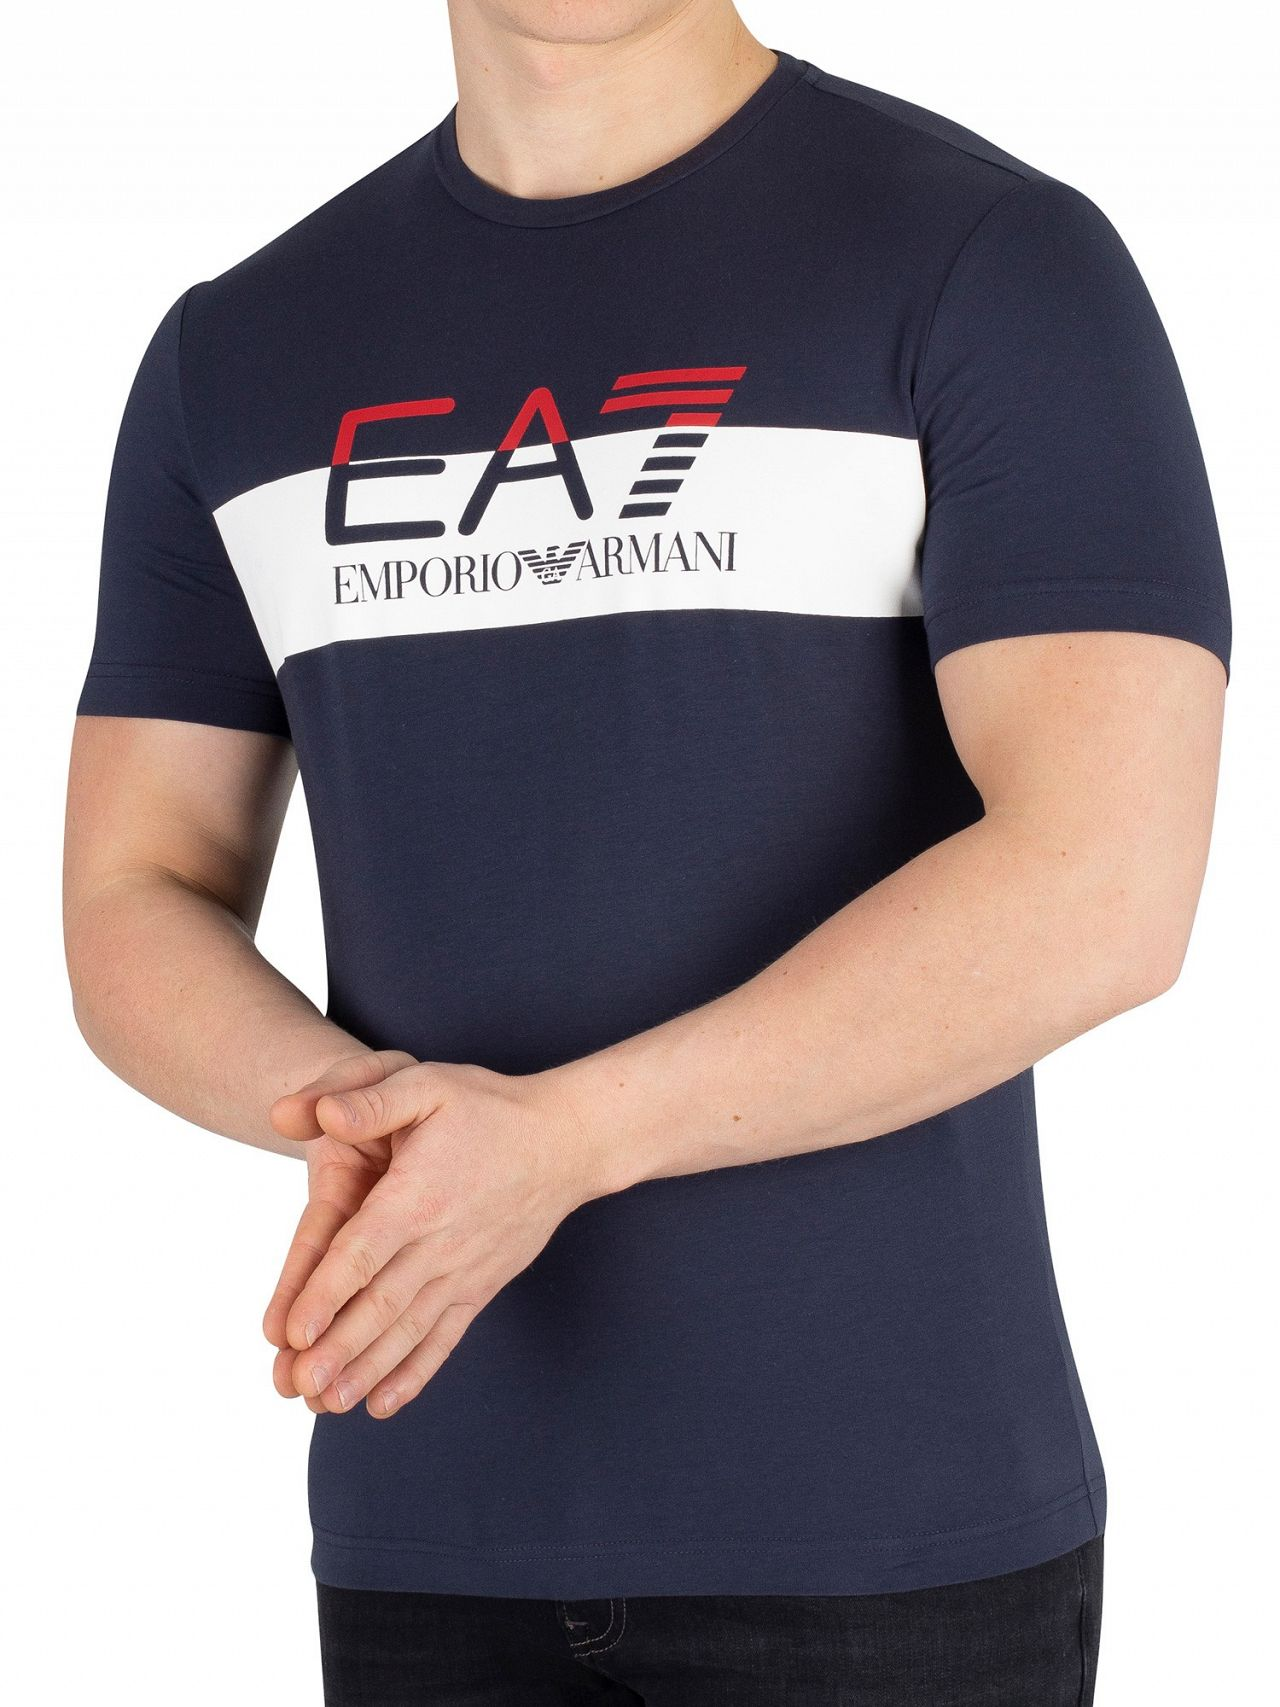 3f60819620 EA7 Navy Blue Graphic Jersey T-Shirt